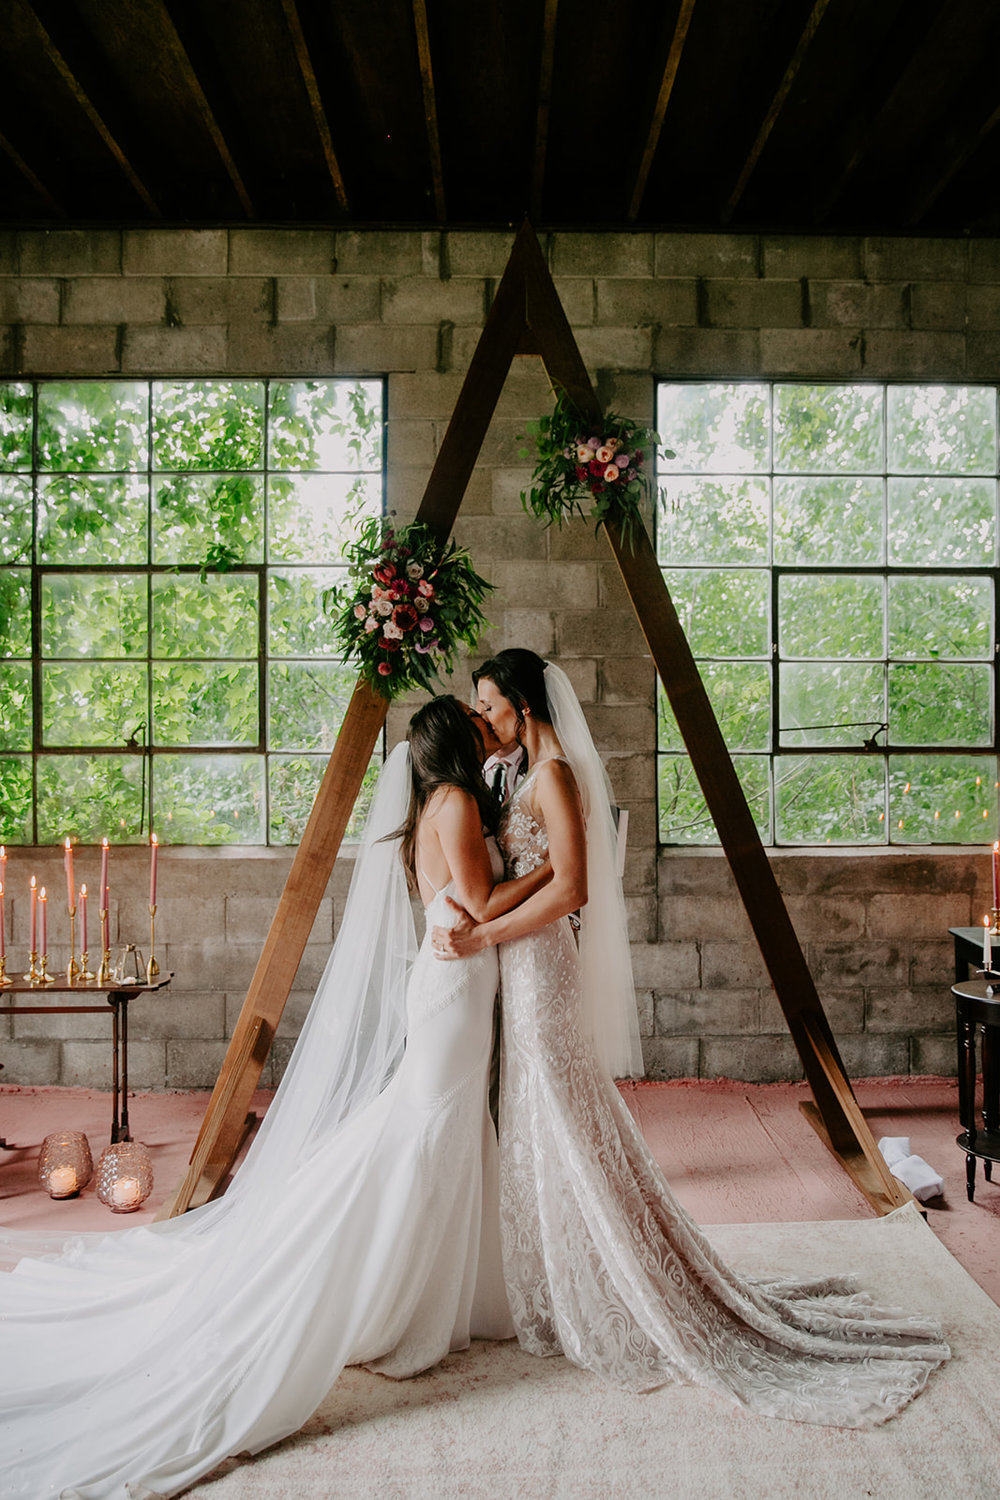 Partial Planning Wedding Services